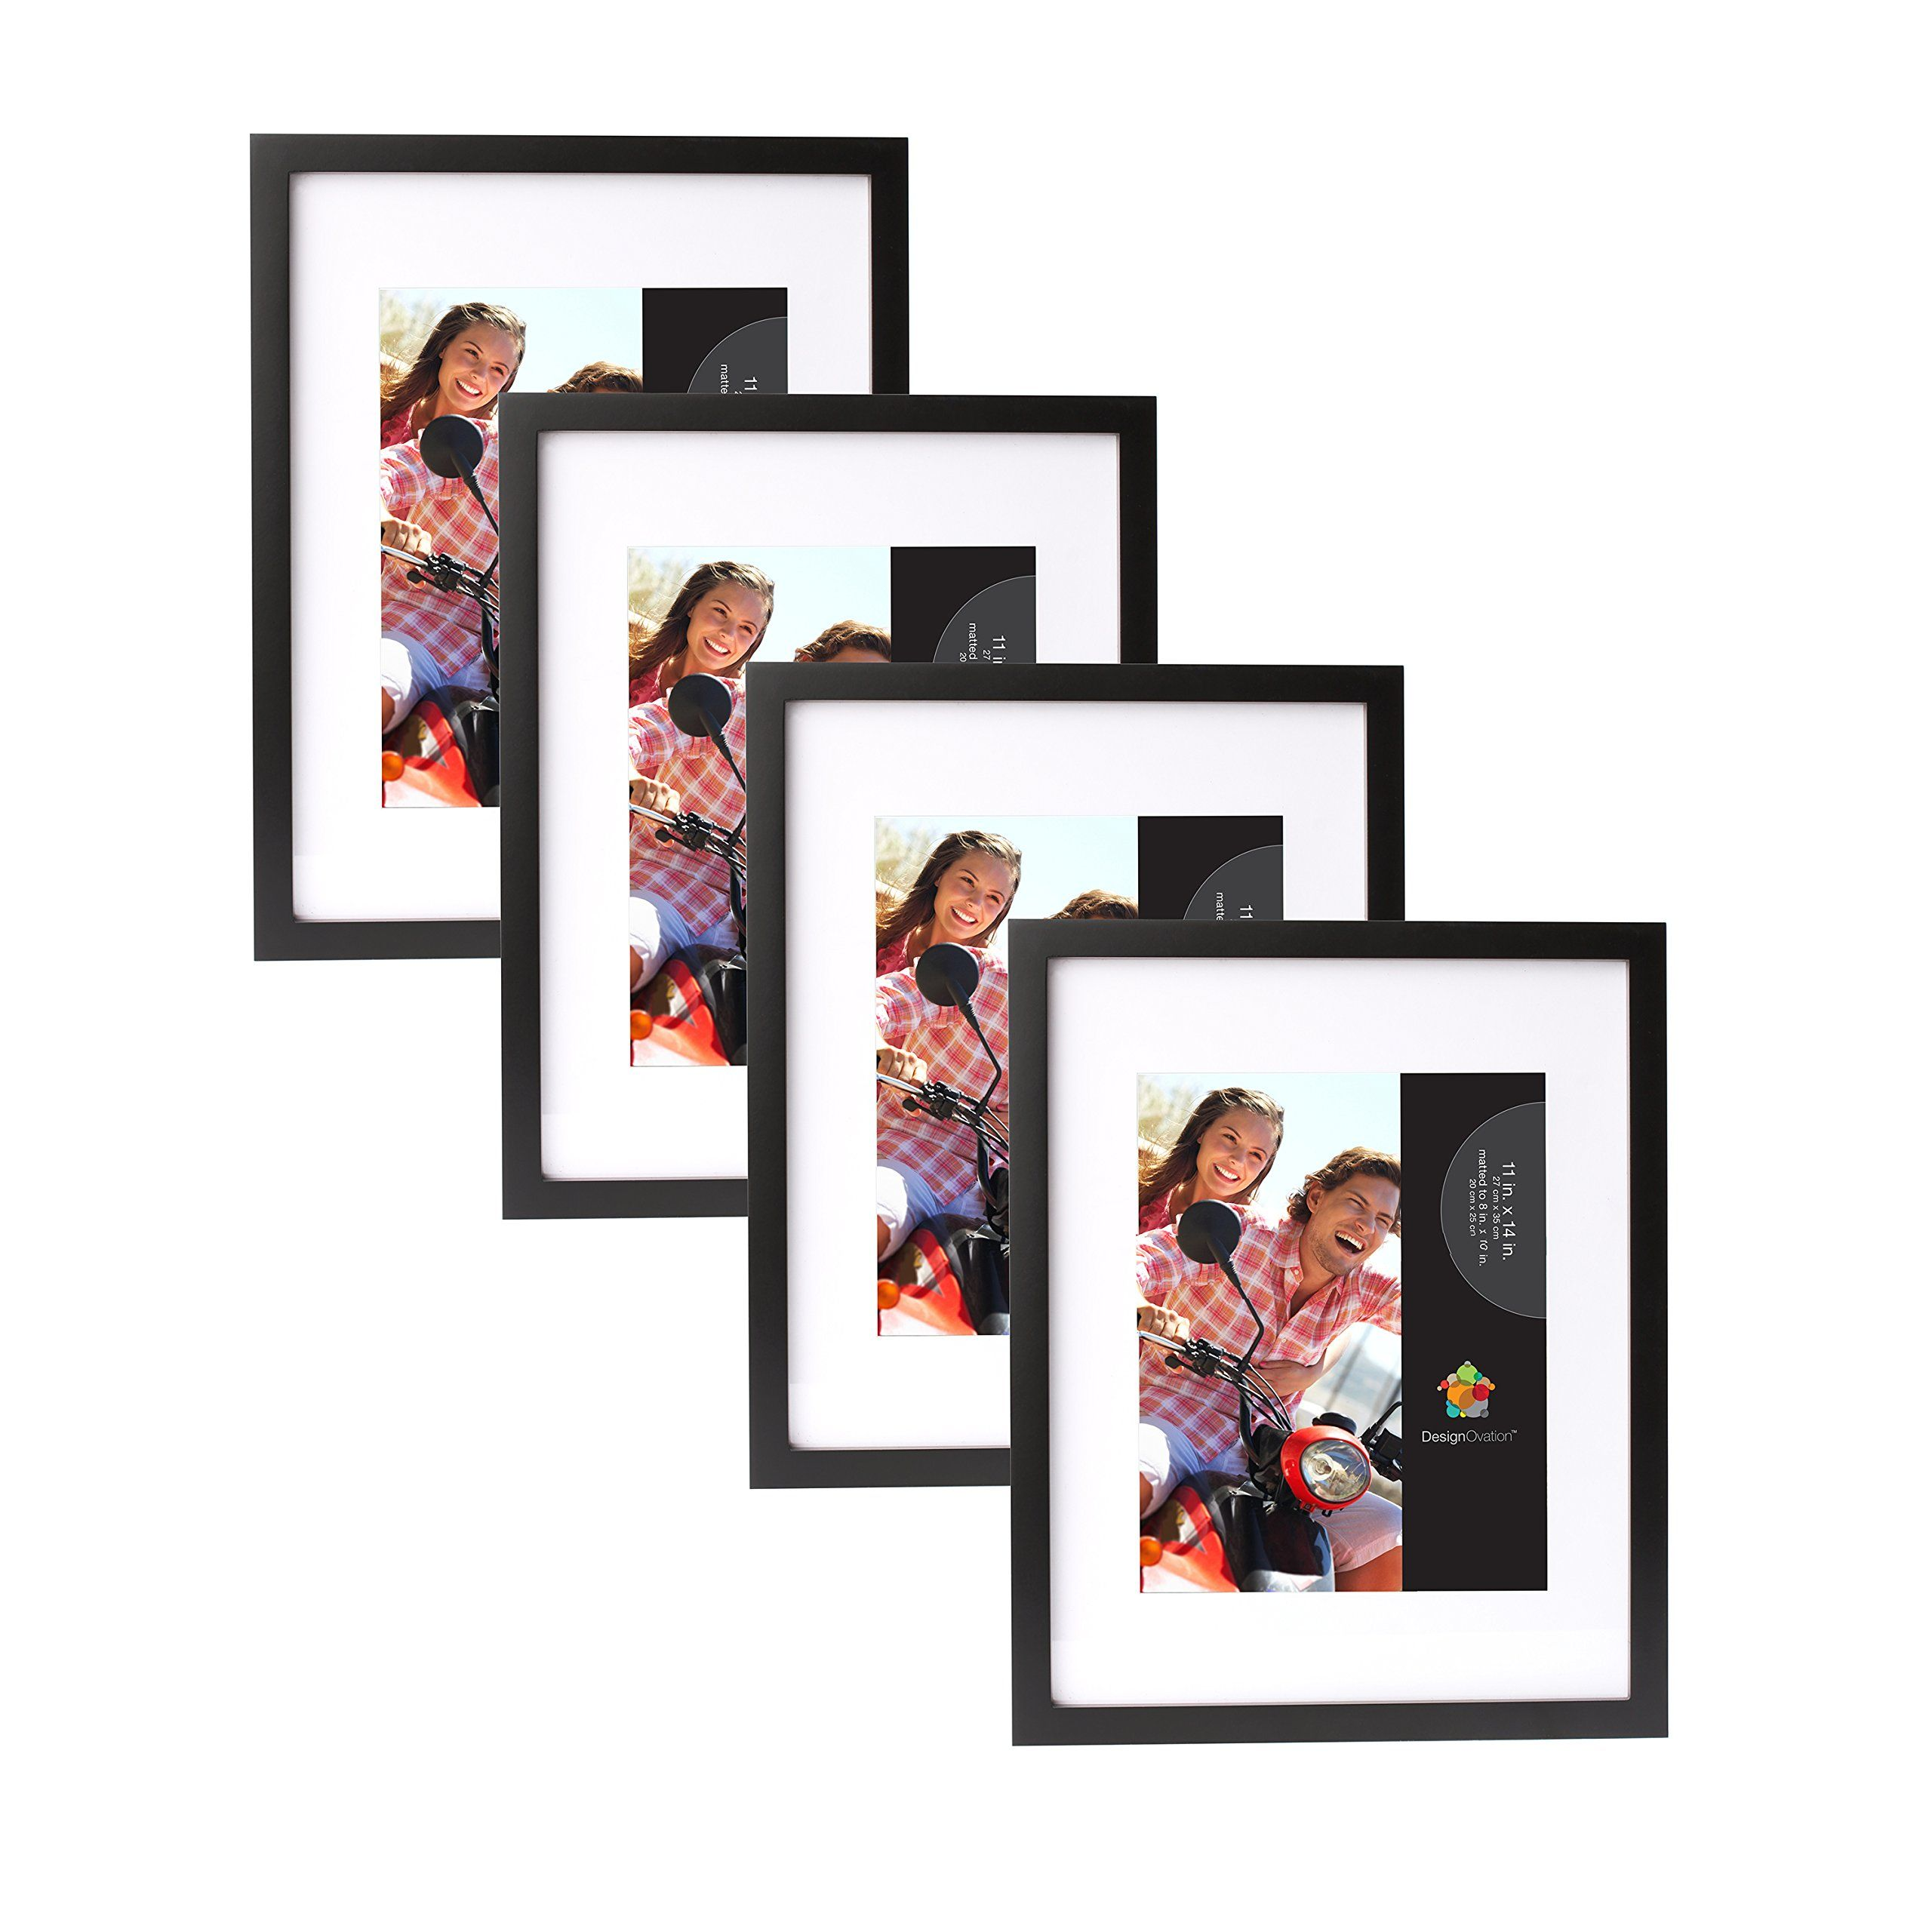 Gallery 11x14 Matted To 8x10 Black Wood Picture Frame Set Of 4 Awesome Products Selected By Wall Hanging Photo Frames Picture Frames Picture Frame Gallery